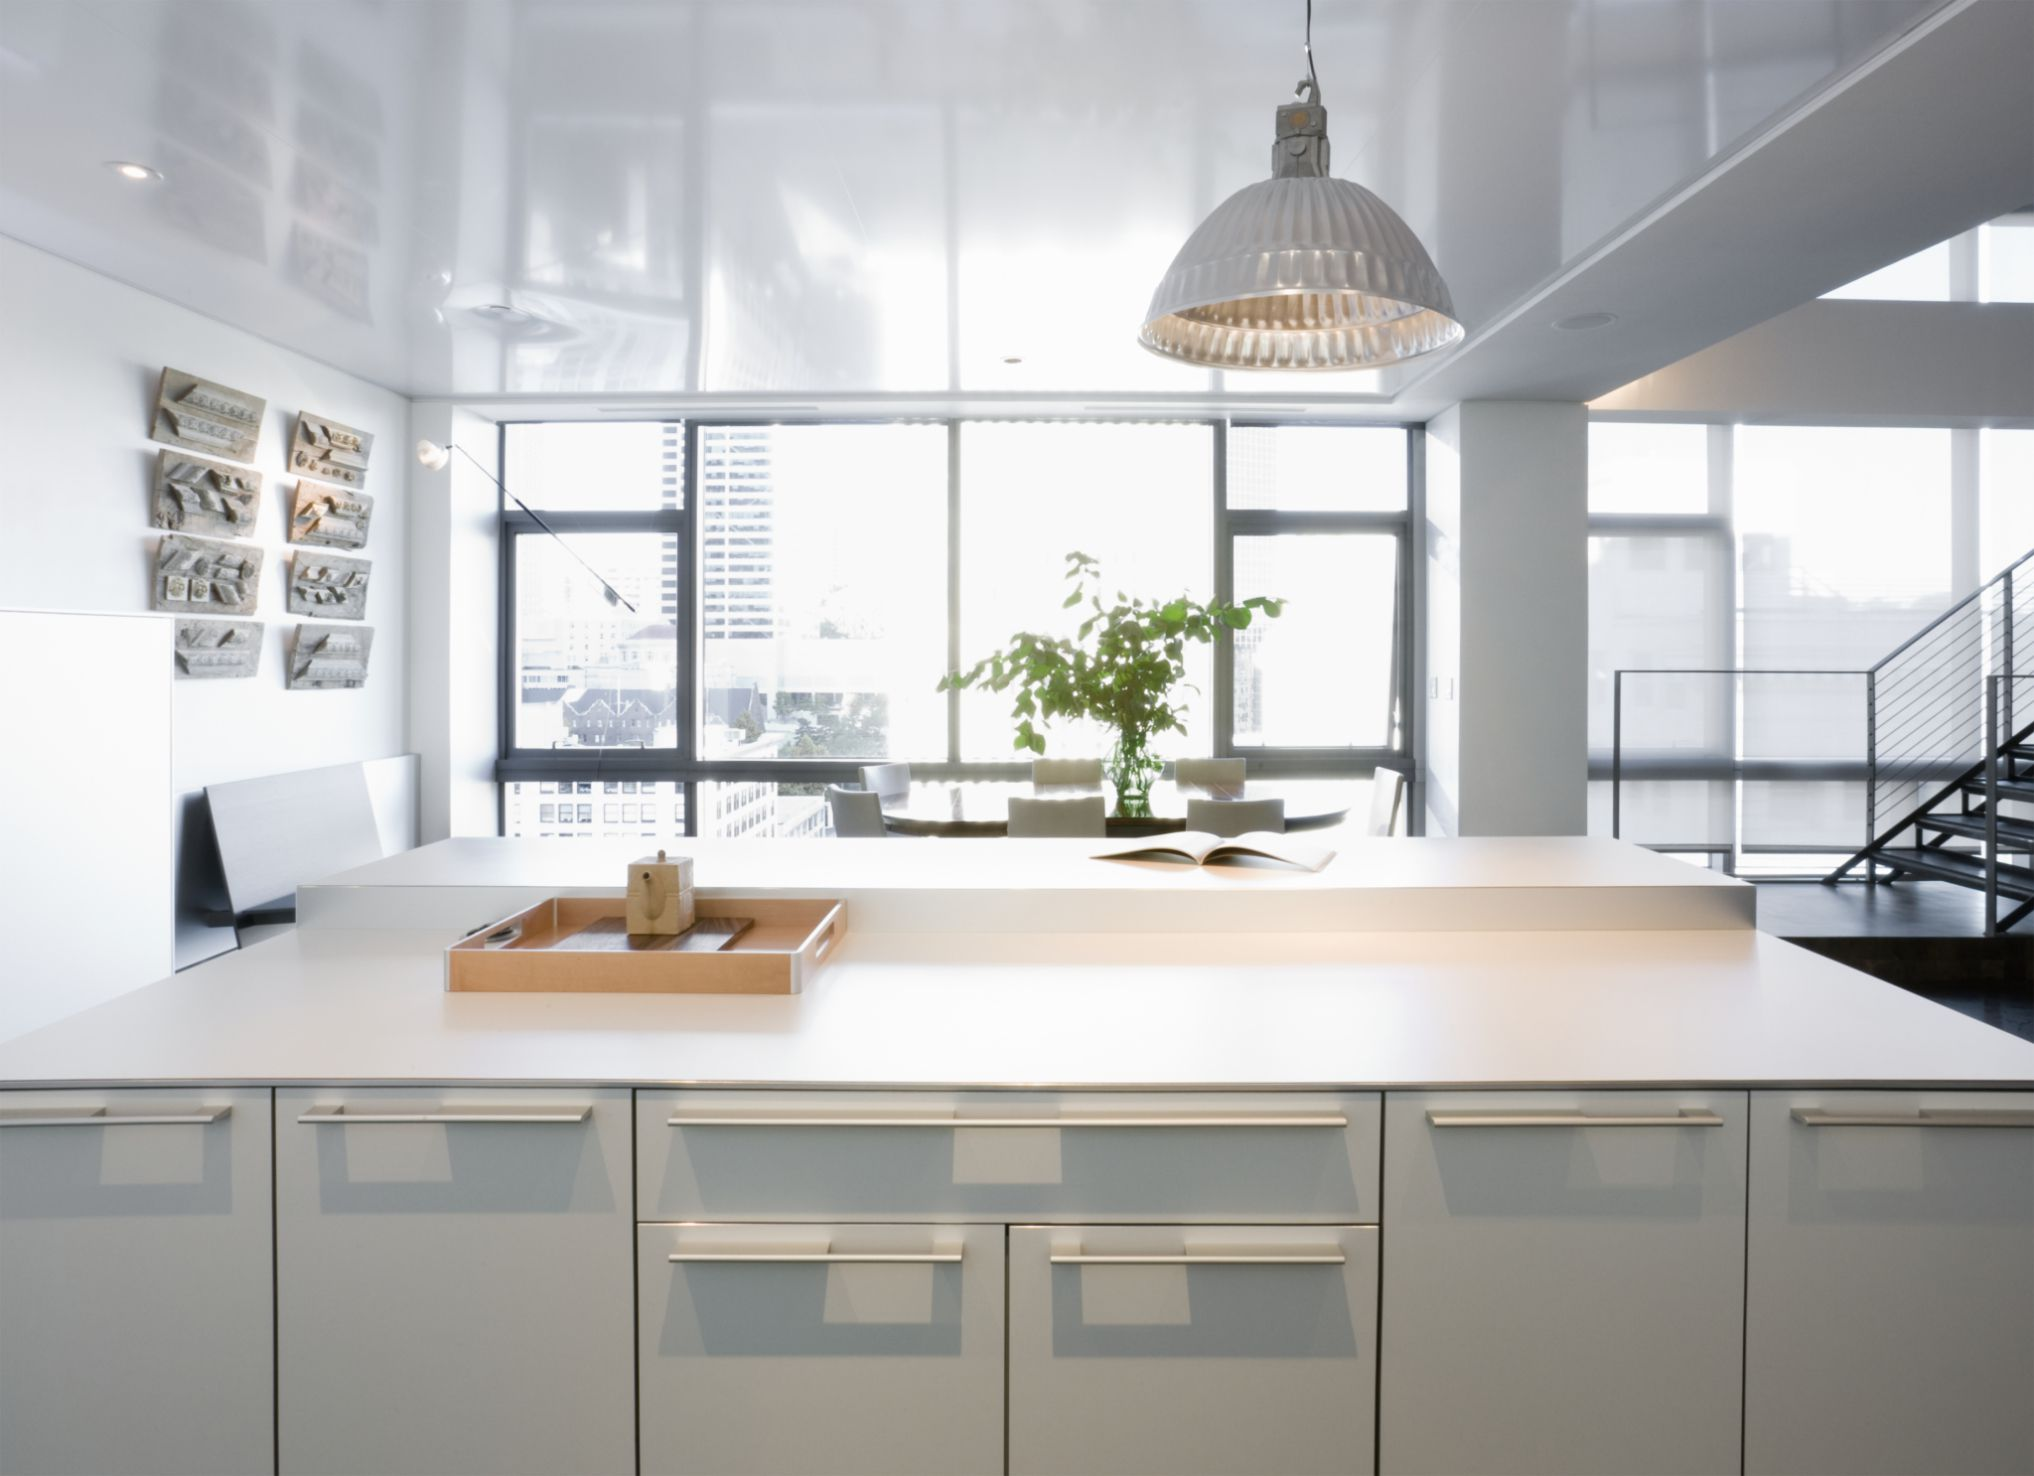 cheap and discount countertops: how to find them